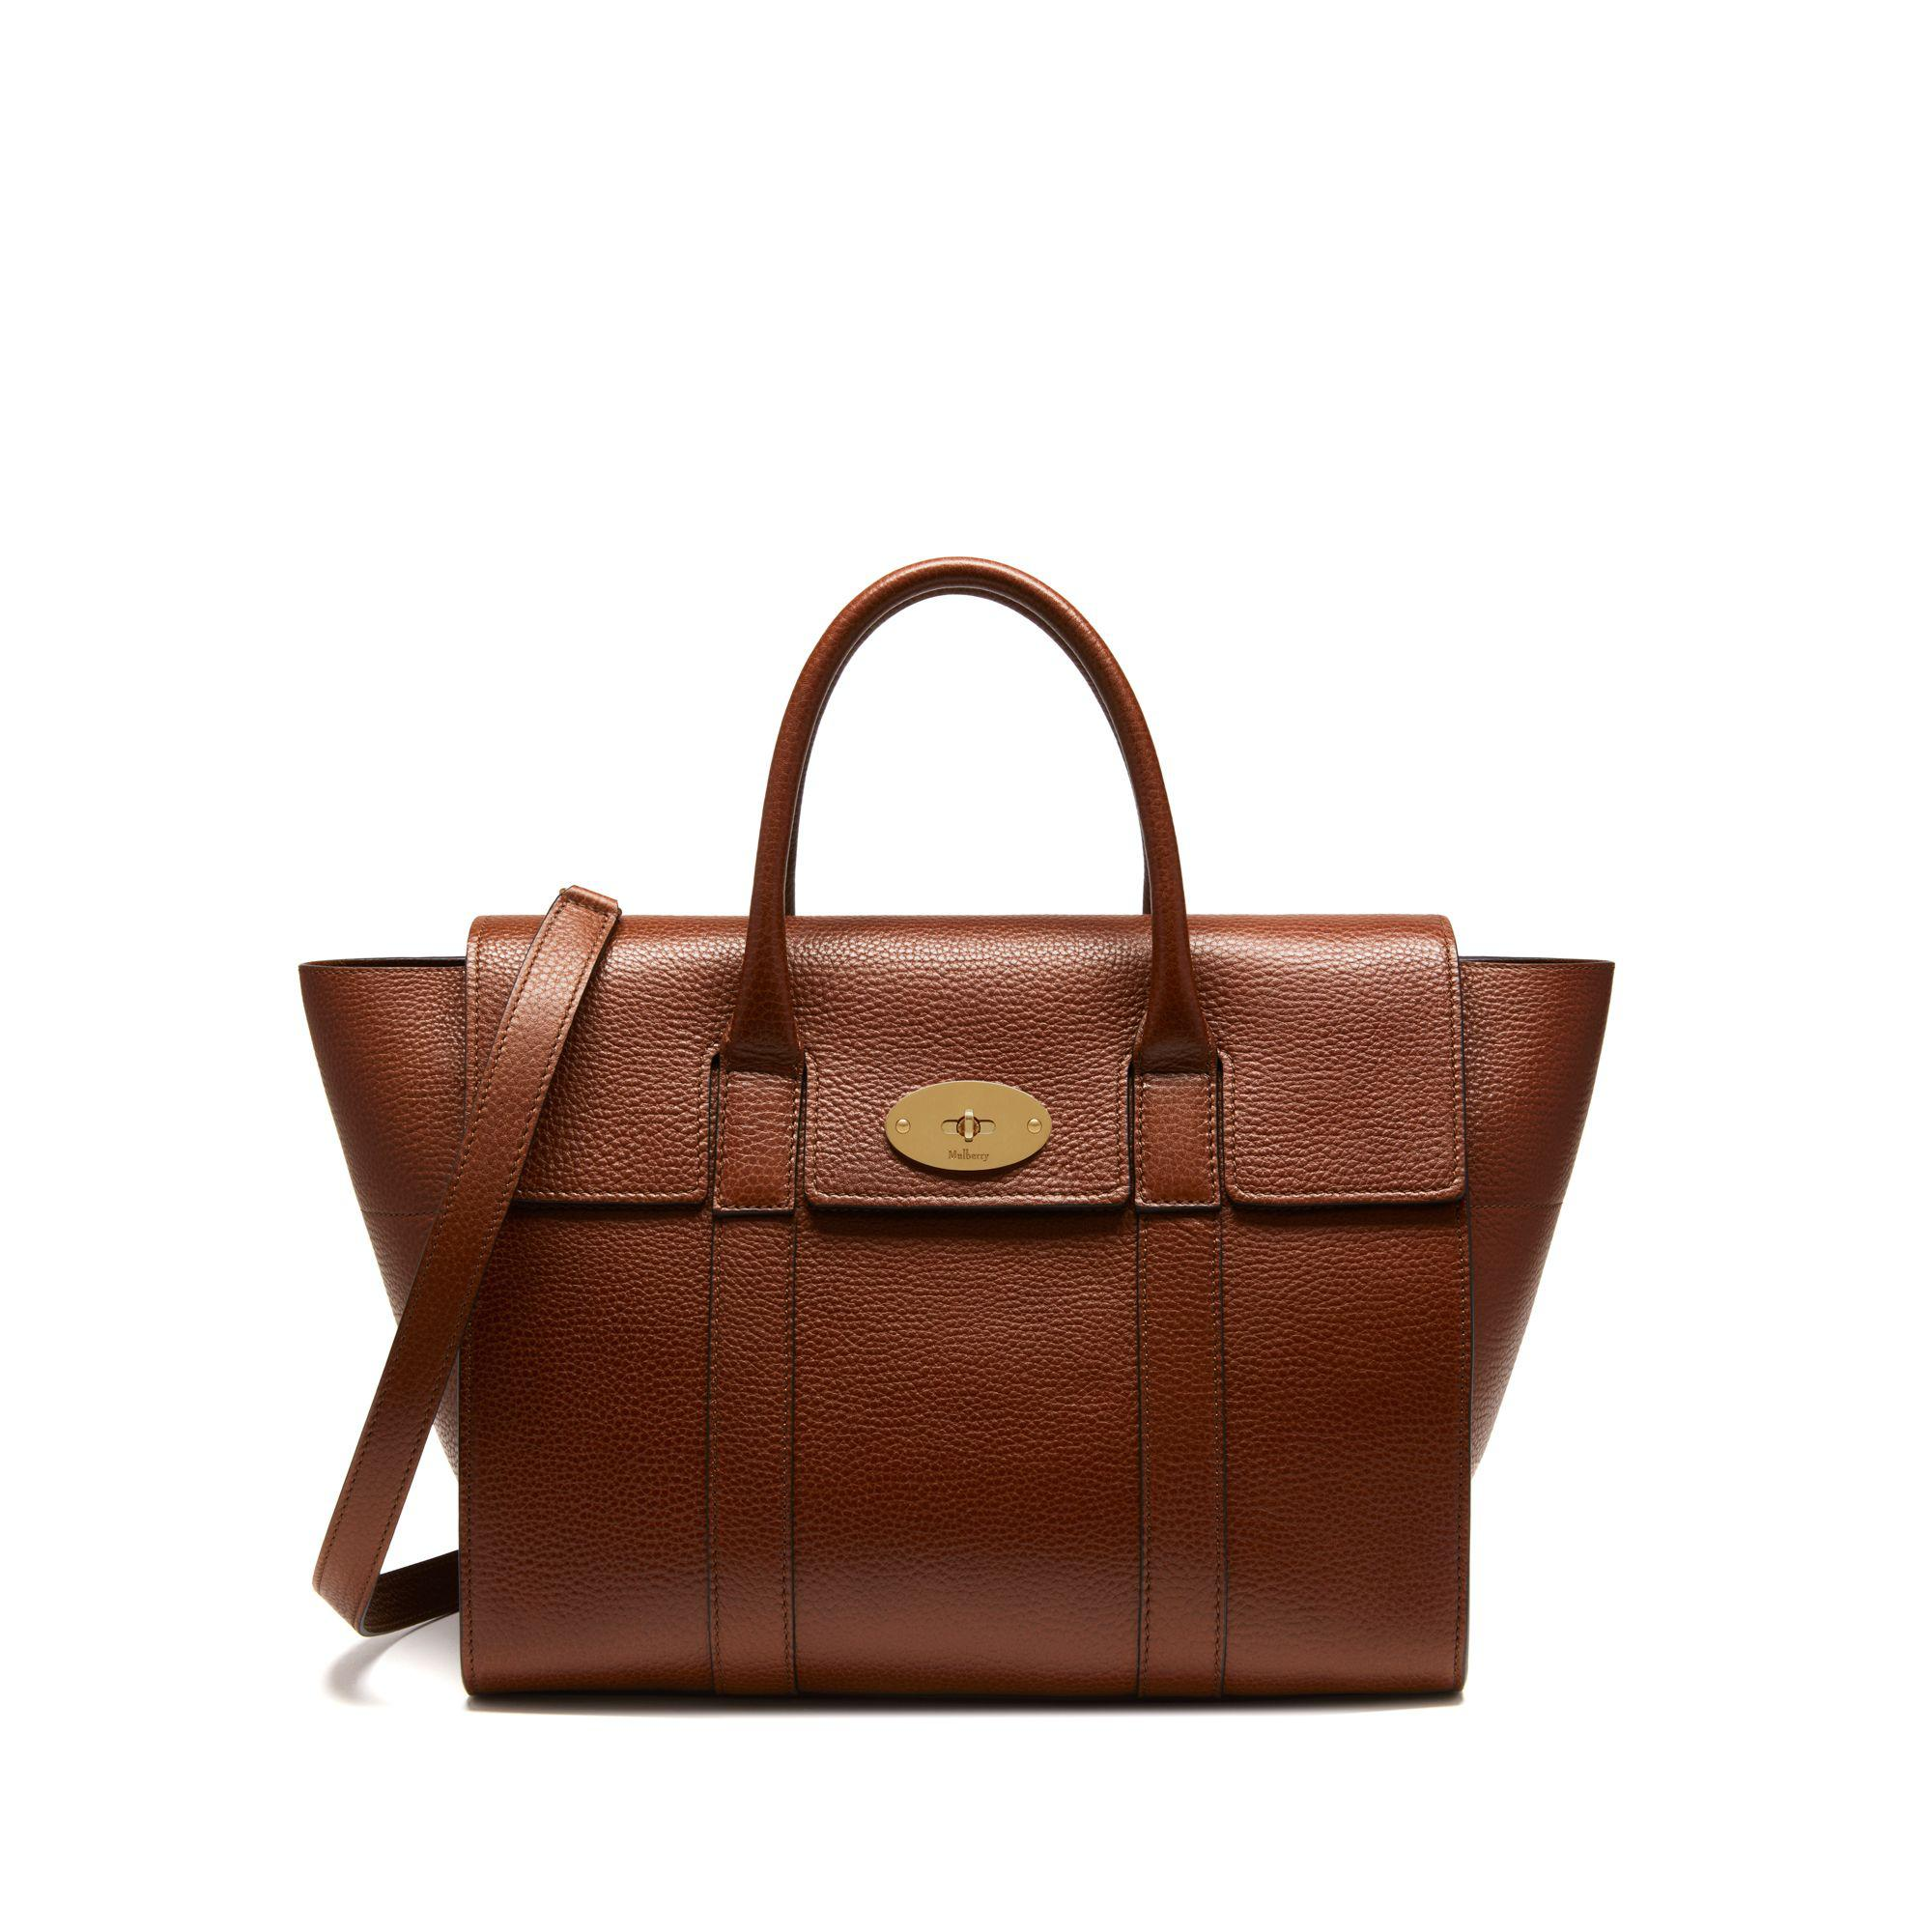 5473825beae5 Mulberry Bayswater With Strap In Oak Natural Grain Leather in Brown ...